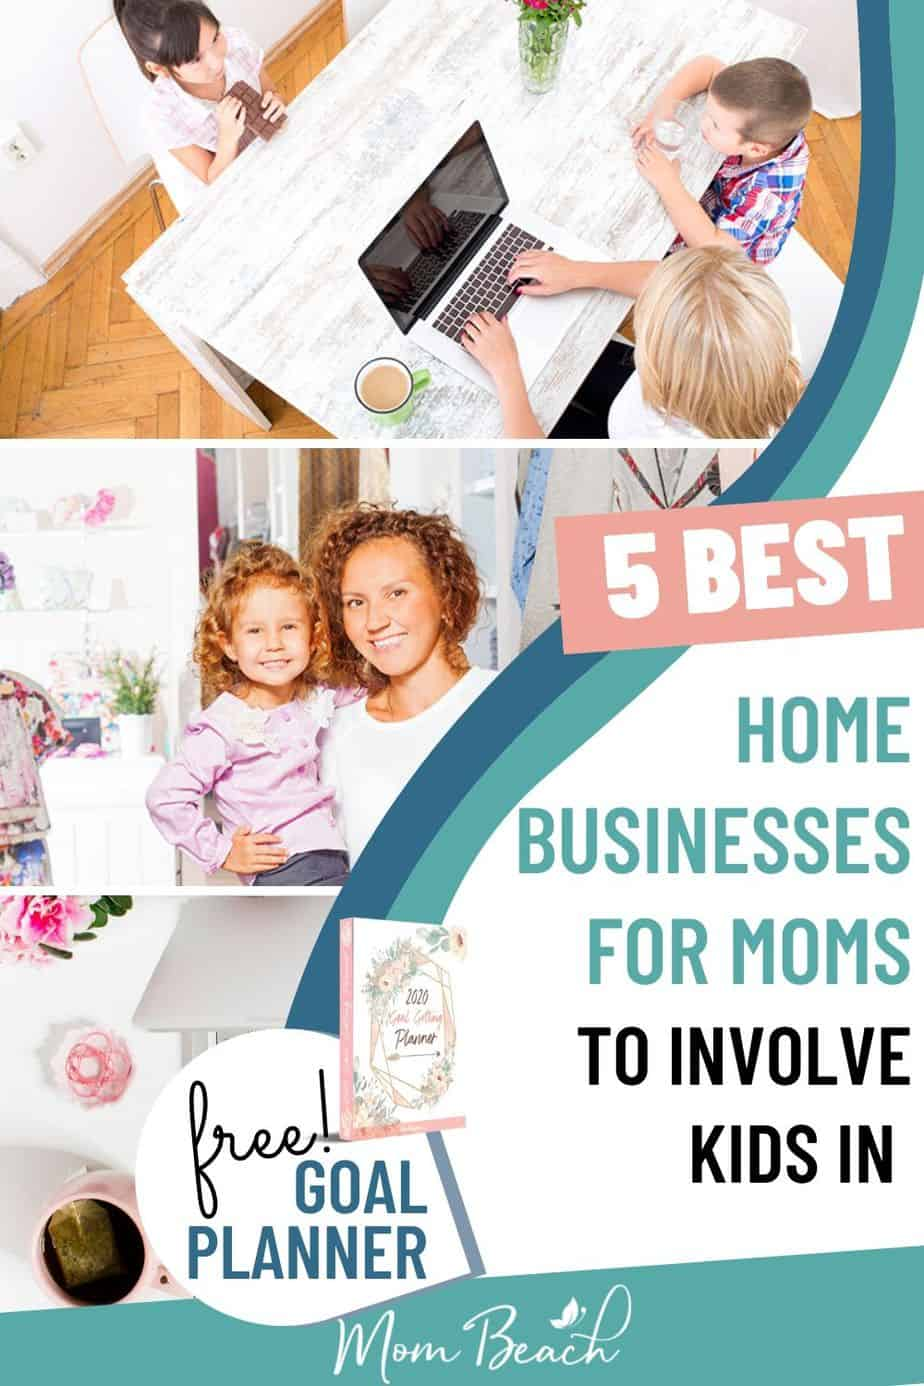 You won't believe how amazing these 5 home business ideas for moms and women are! We have home business ideas for women craft projects and more. You can work from home and start a small business. There are so many ways for women to earn money from home. Stay at home moms can make thousands a month like I do by starting their easy business. It is the best way to make money from home. #homebusinessideas #homebusinessideasforwomen #homebusinessideasformoms #homebusiness